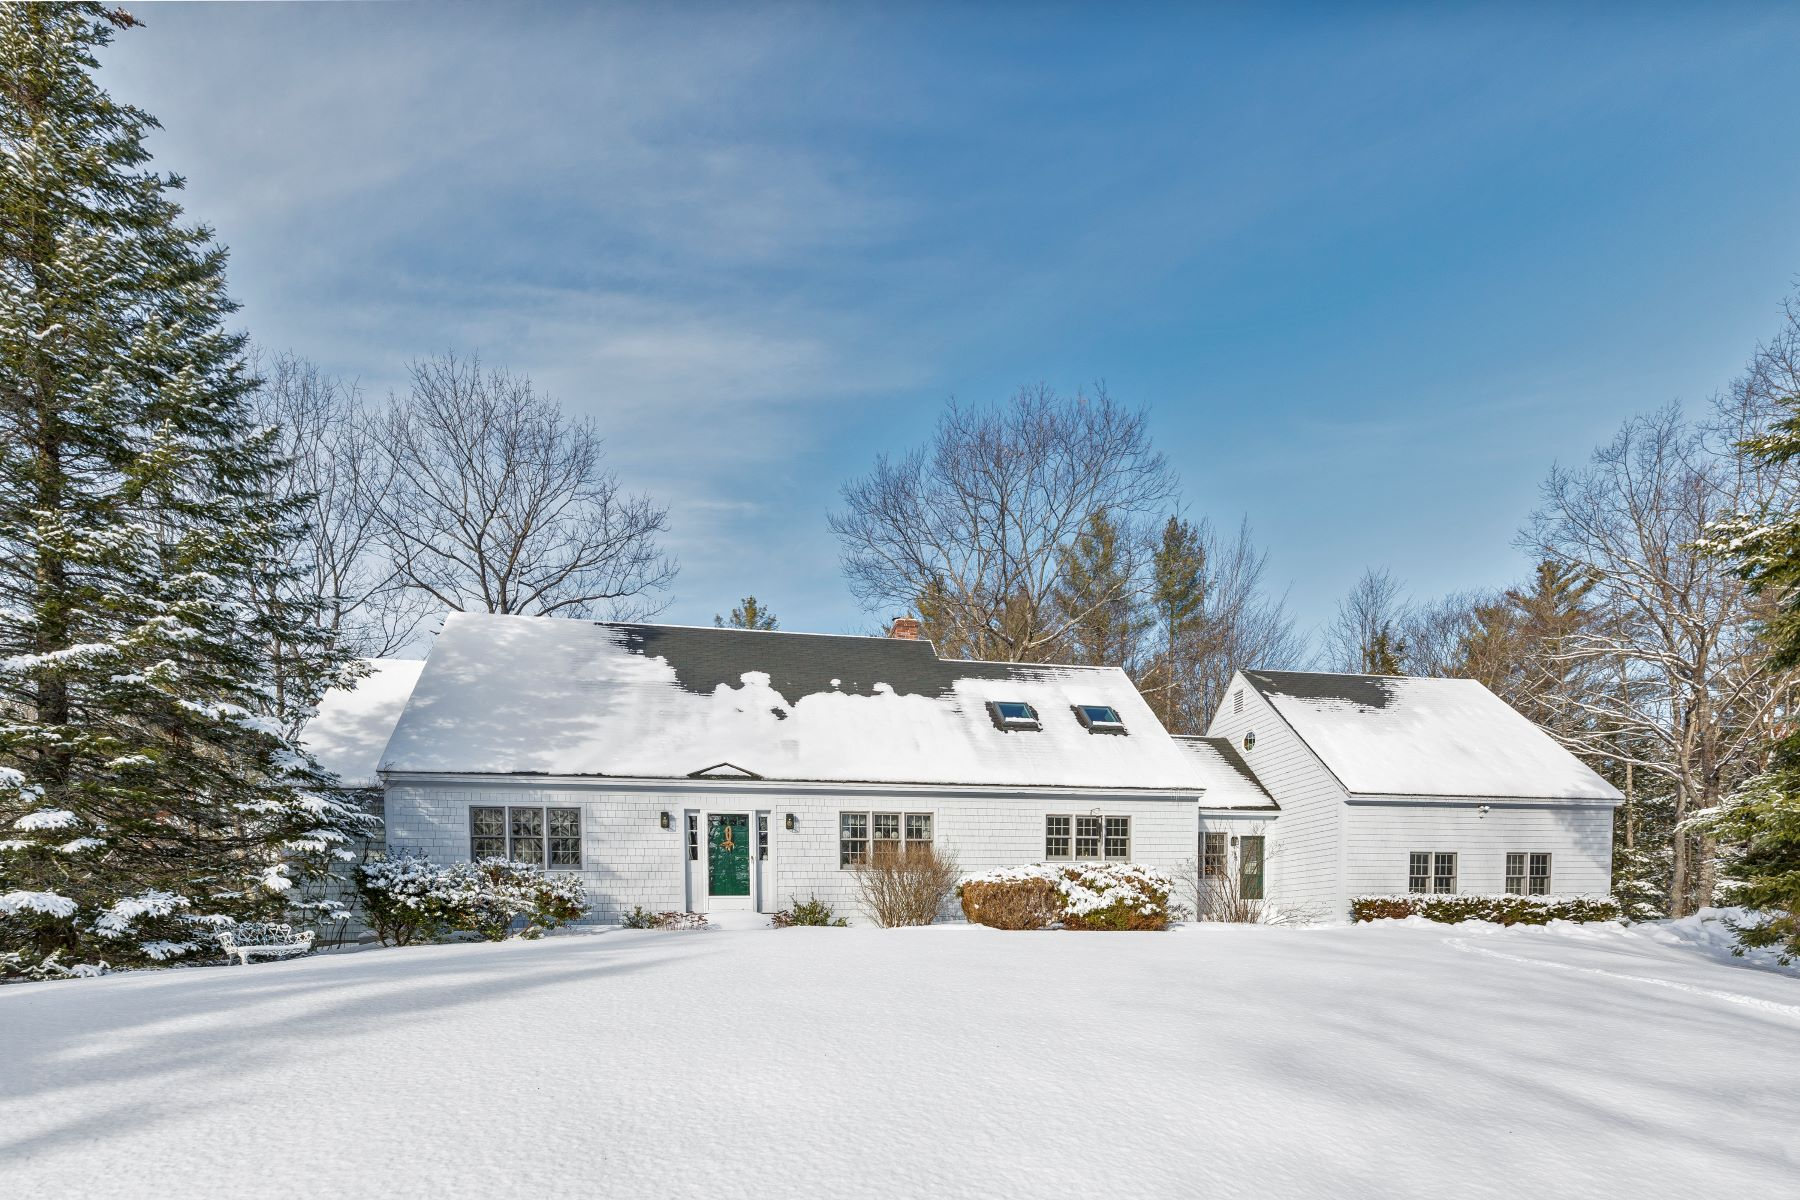 Single Family Homes for Sale at 71 Patterson Road Wilmot, New Hampshire 03257 United States